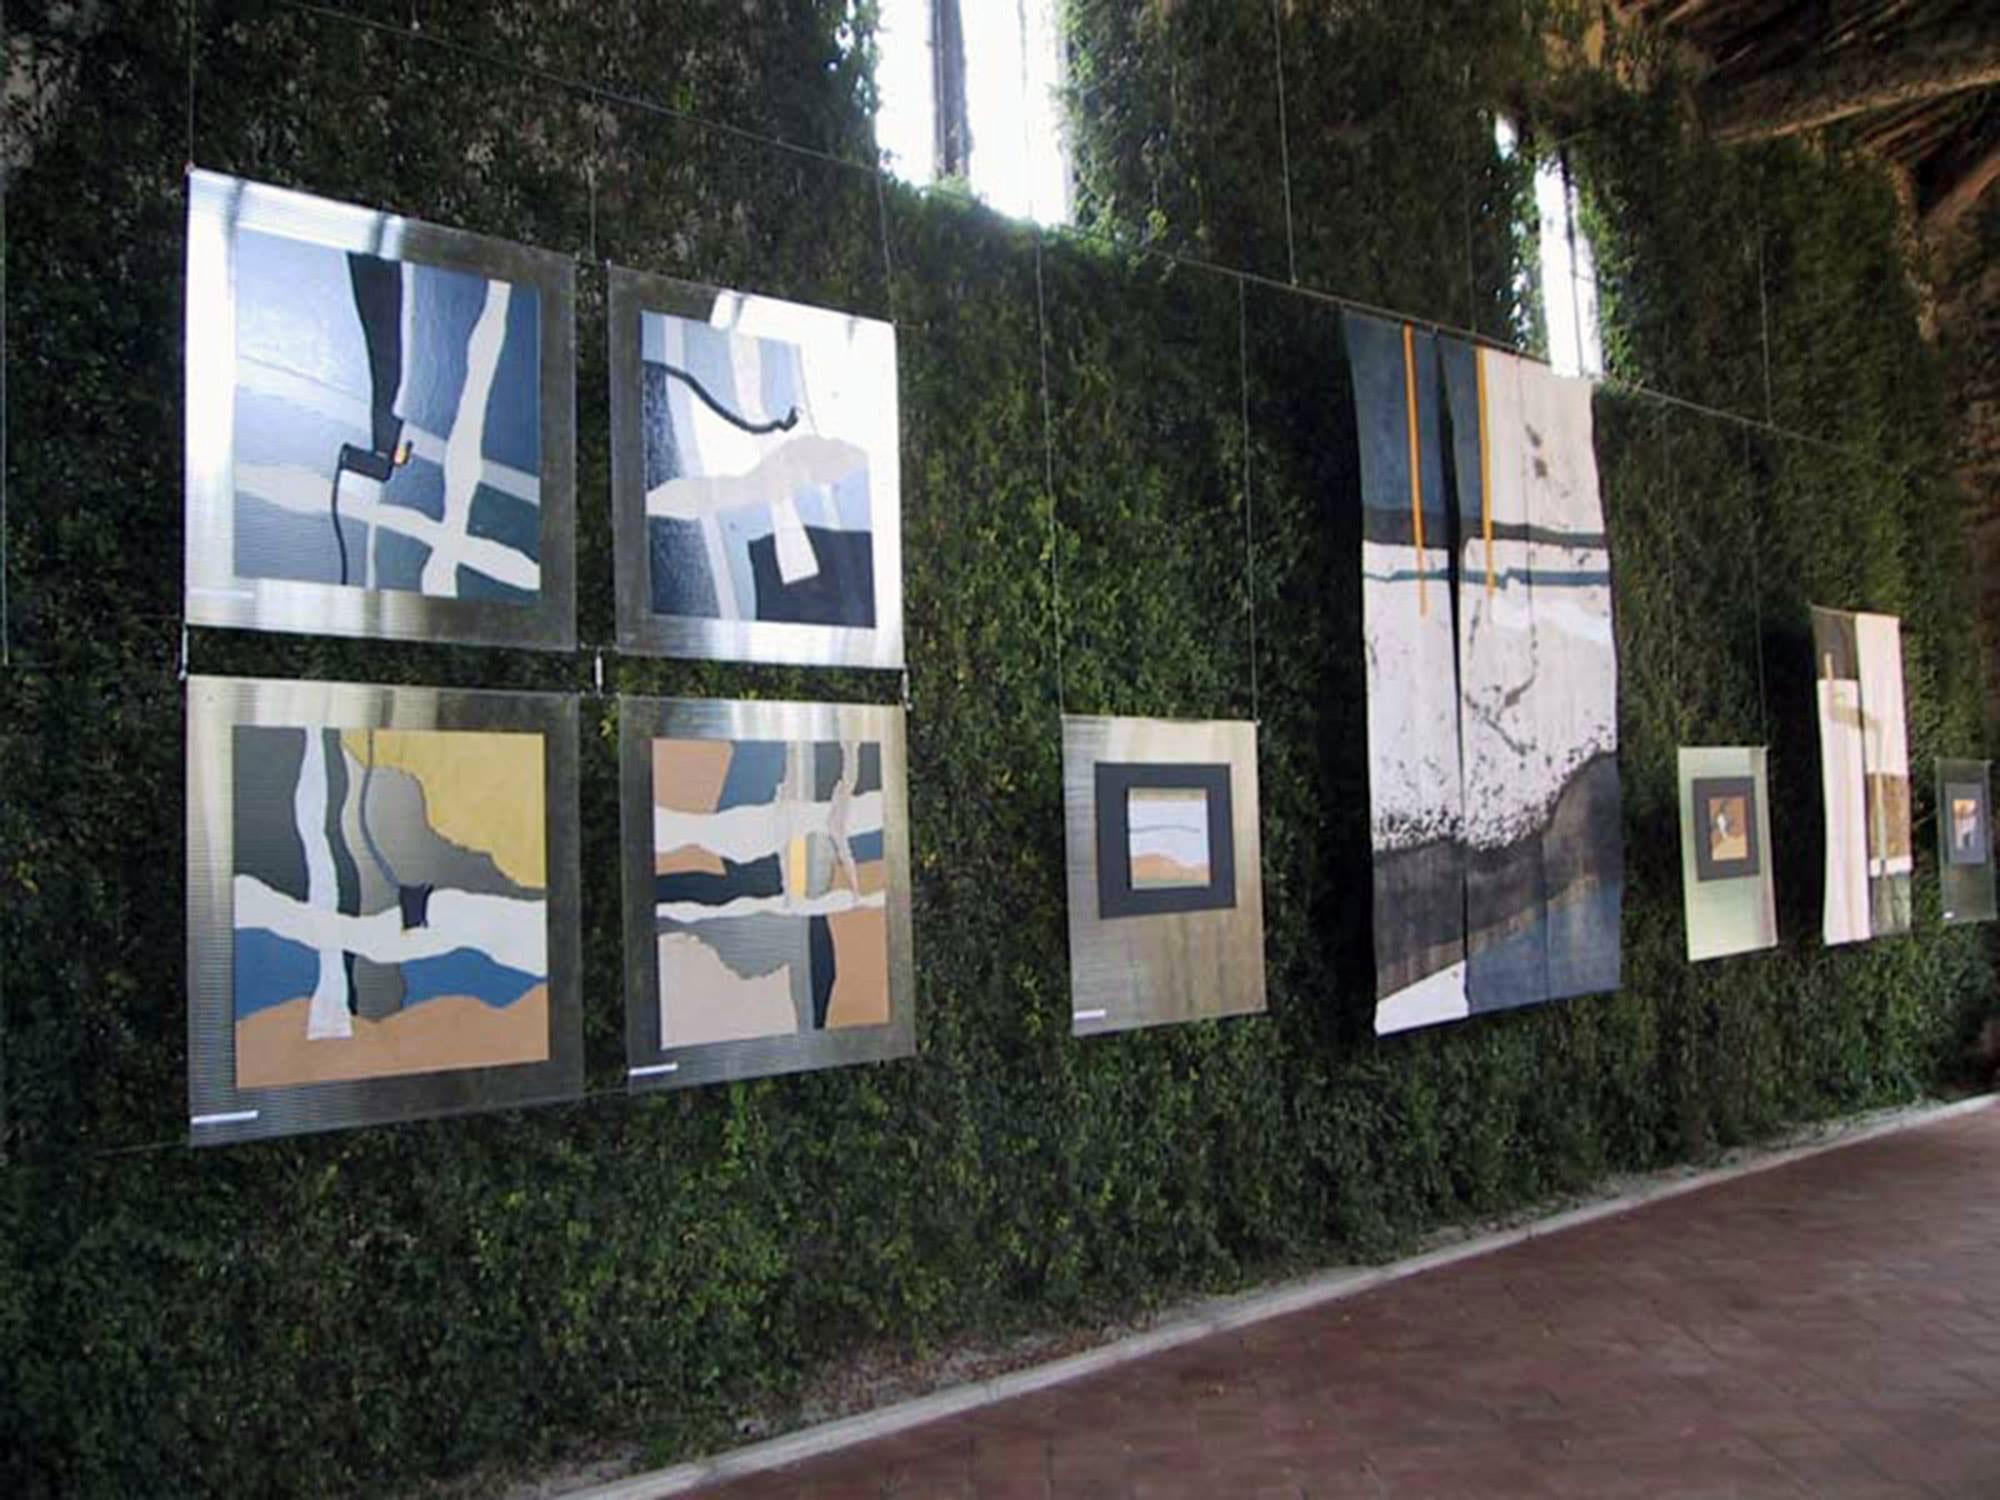 Vernissage villa bernardini